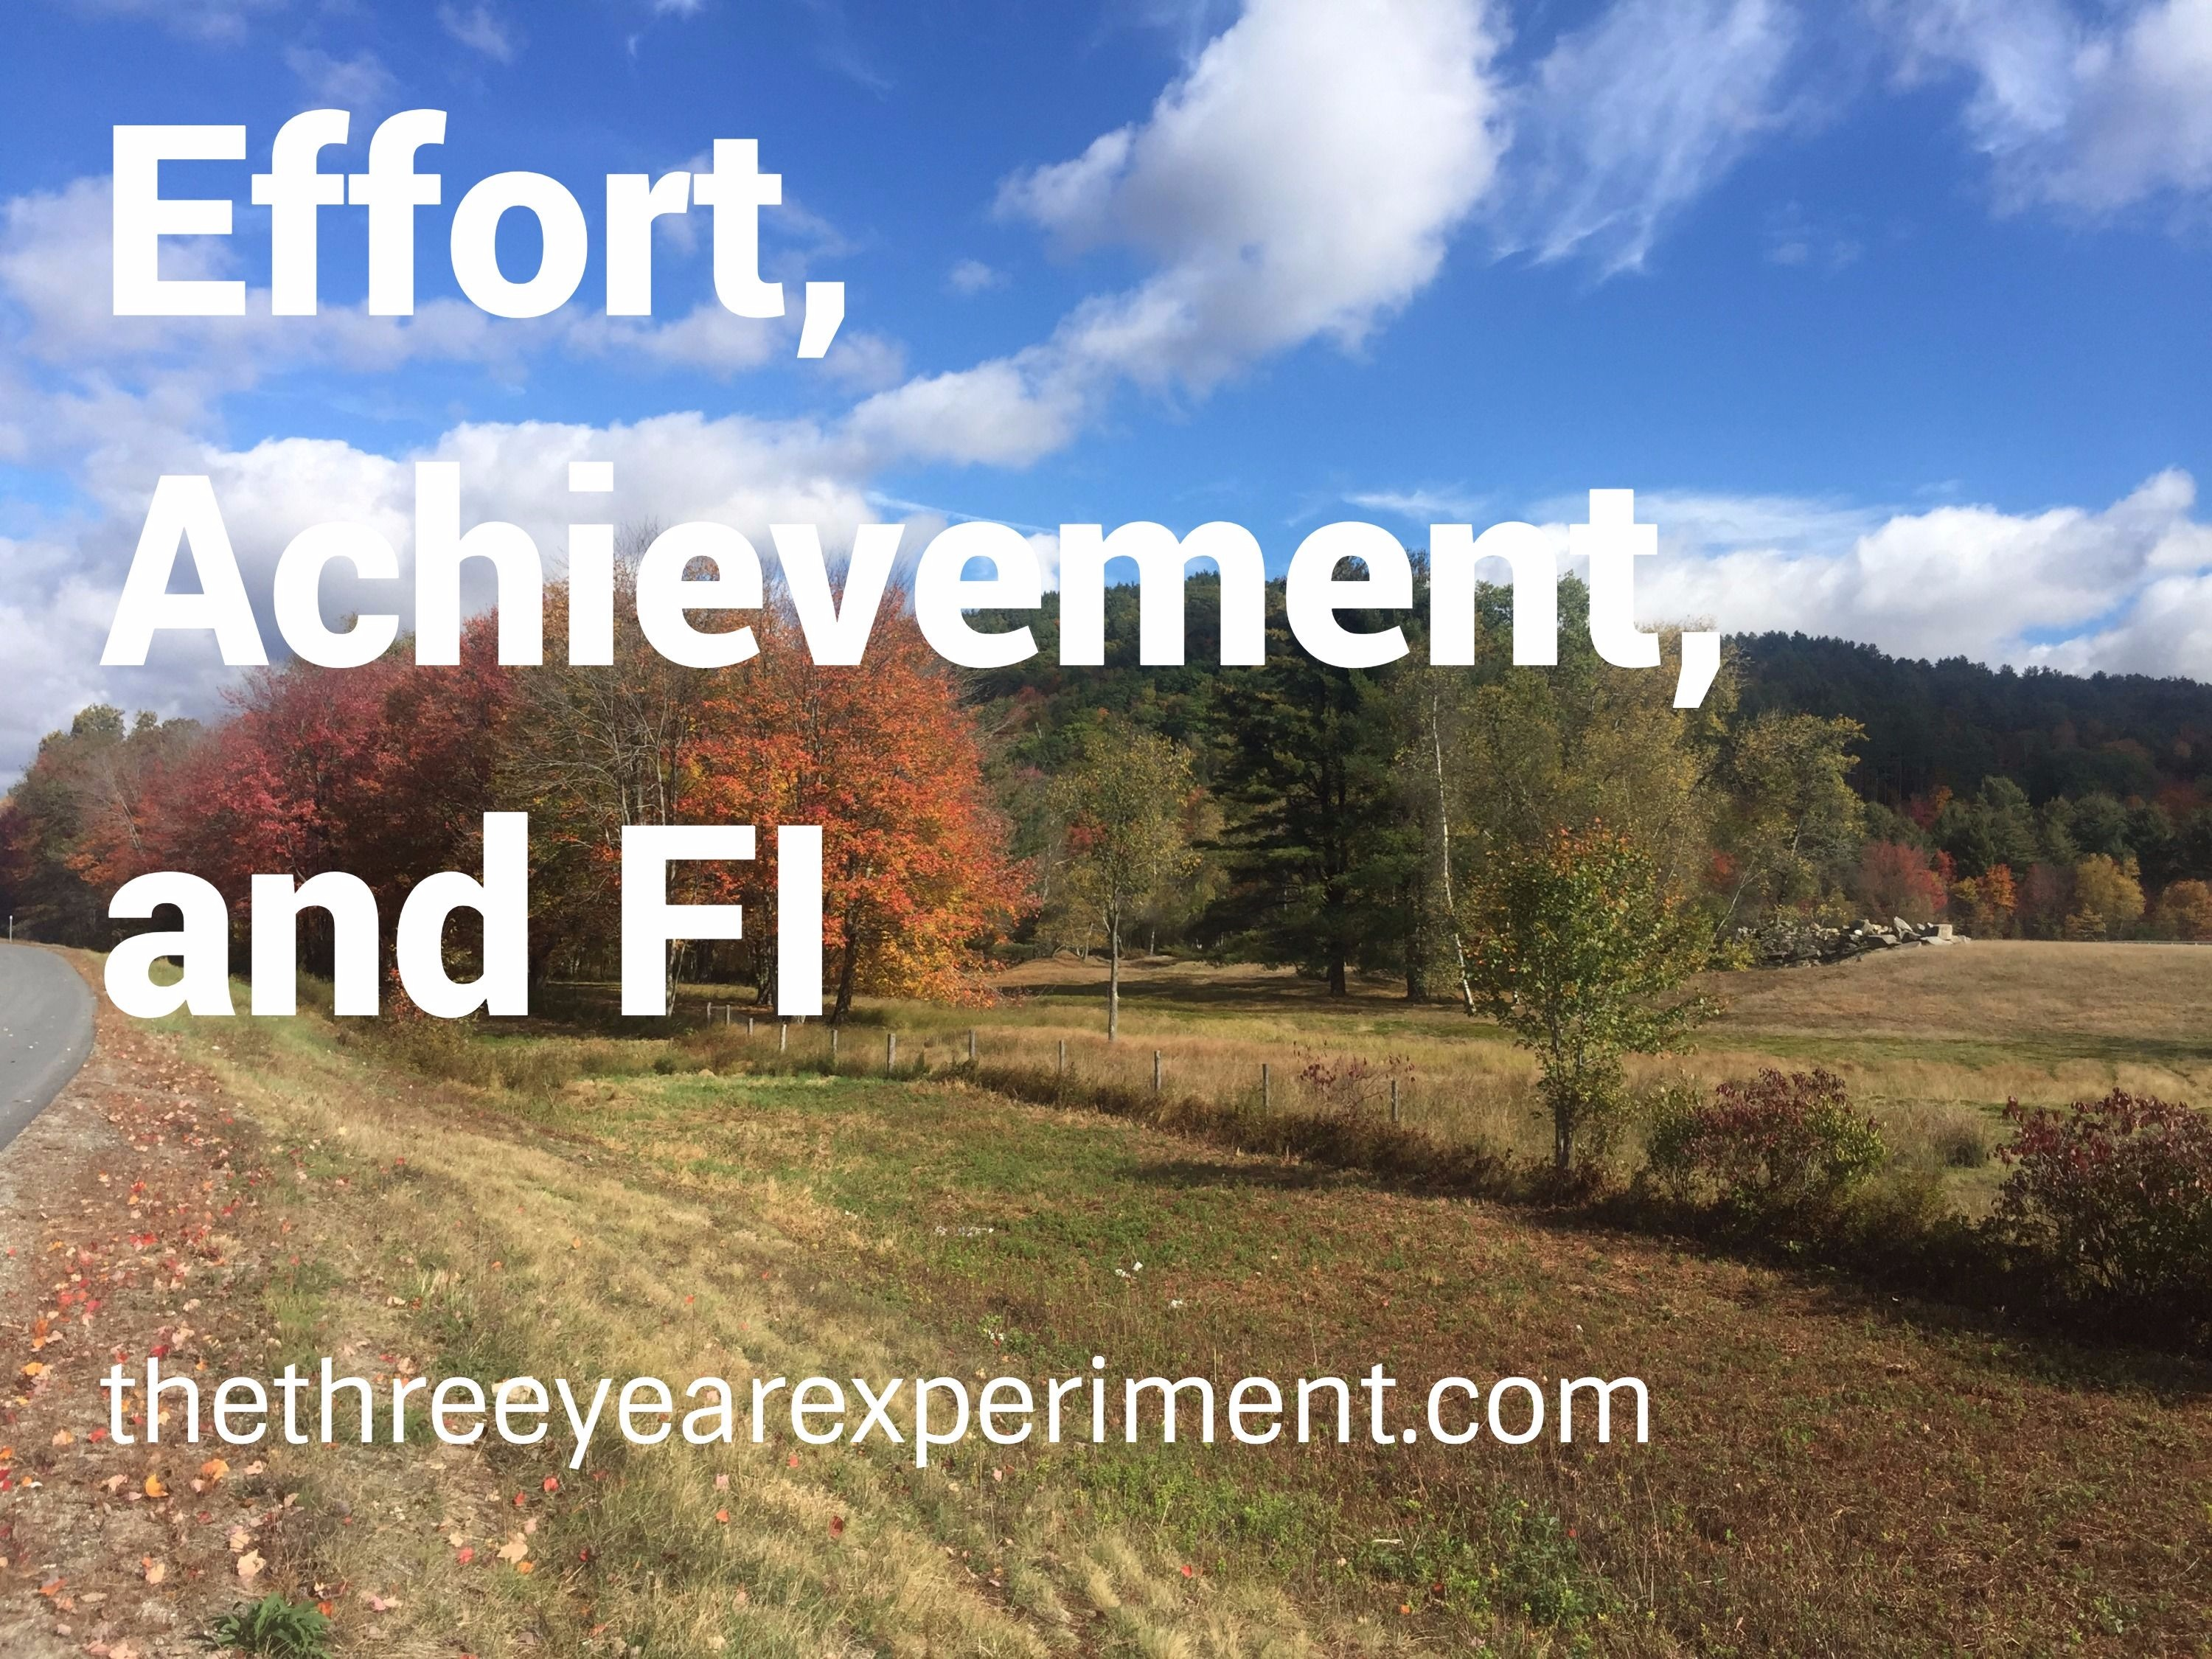 Effort, Achievement, and FI--www.thethreeyearexperiment.com